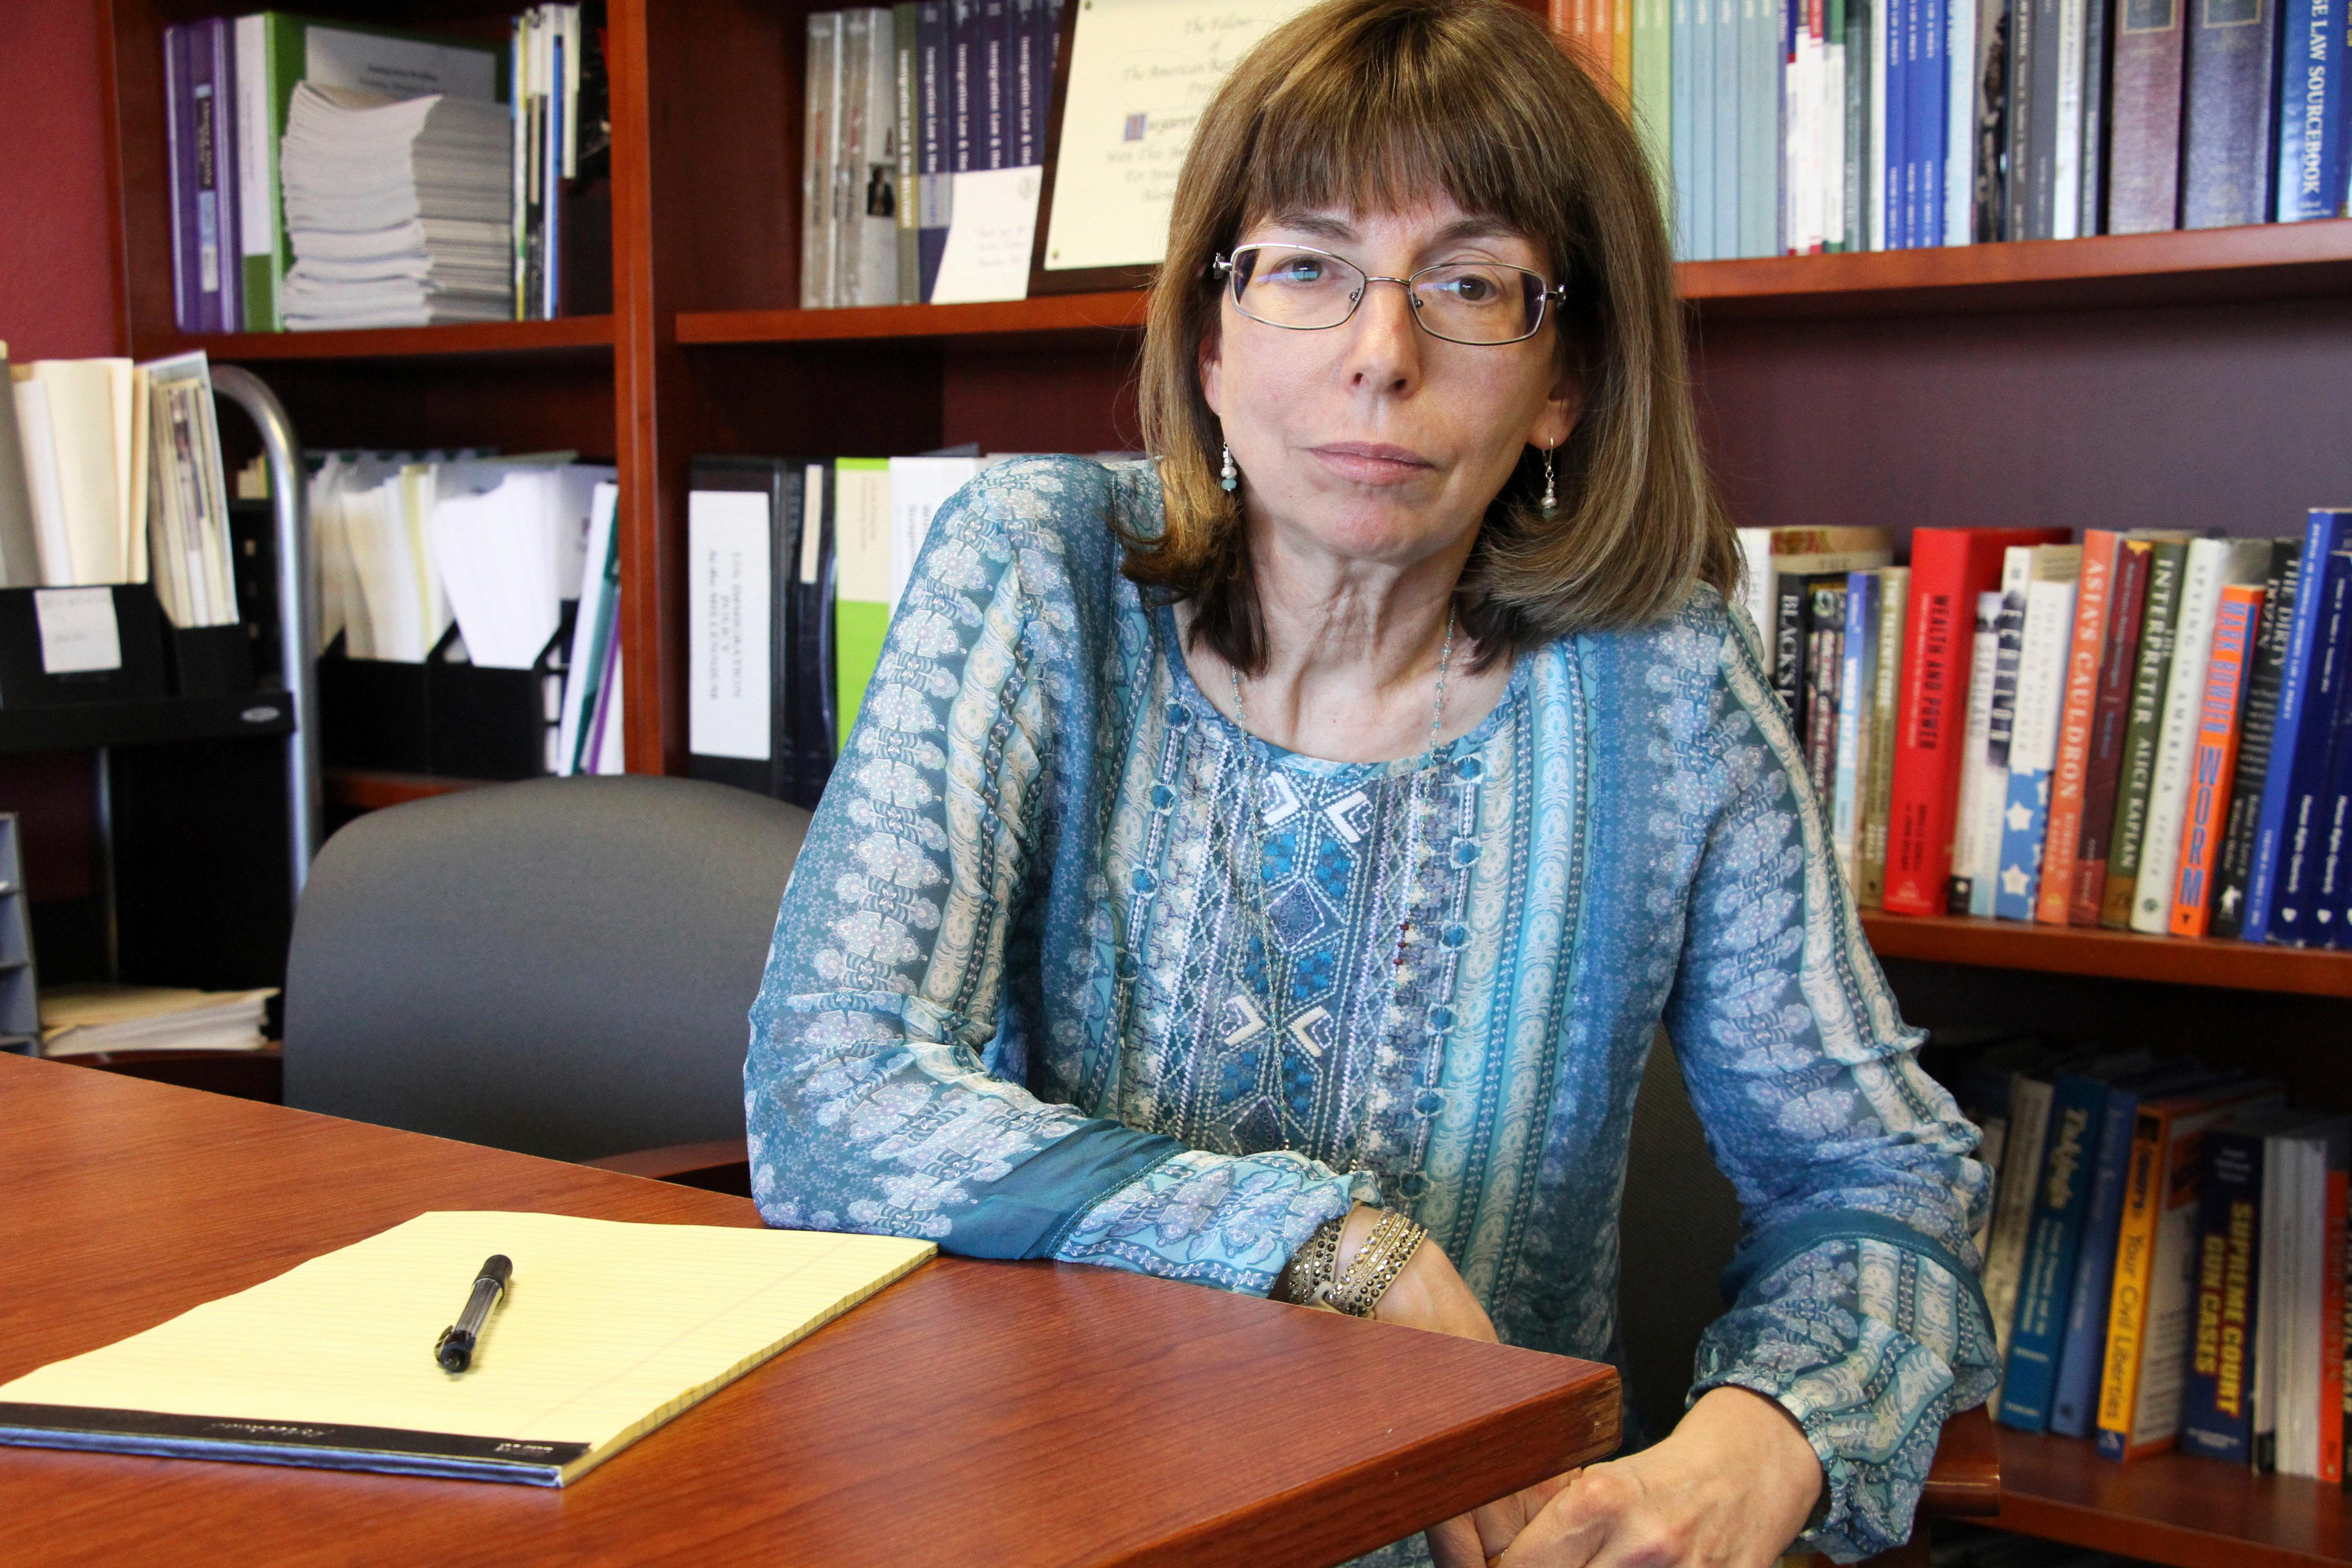 In this Tuesday, July 3, 2018 photo, Margaret Stock, an Alaska-based immigration attorney and a retired Army Reserve lieutenant colonel who helped create the immigrant recruitment program, poses at her office in Anchorage, Alaska. The U.S. Army has moved in recent weeks to discharge some immigrant recruits and reservists who enlisted through a program that promised them a path to citizenship. Stock said she's been inundated over the past several days by recruits who report being abruptly discharged. (AP Photo/Mark Thiessen)